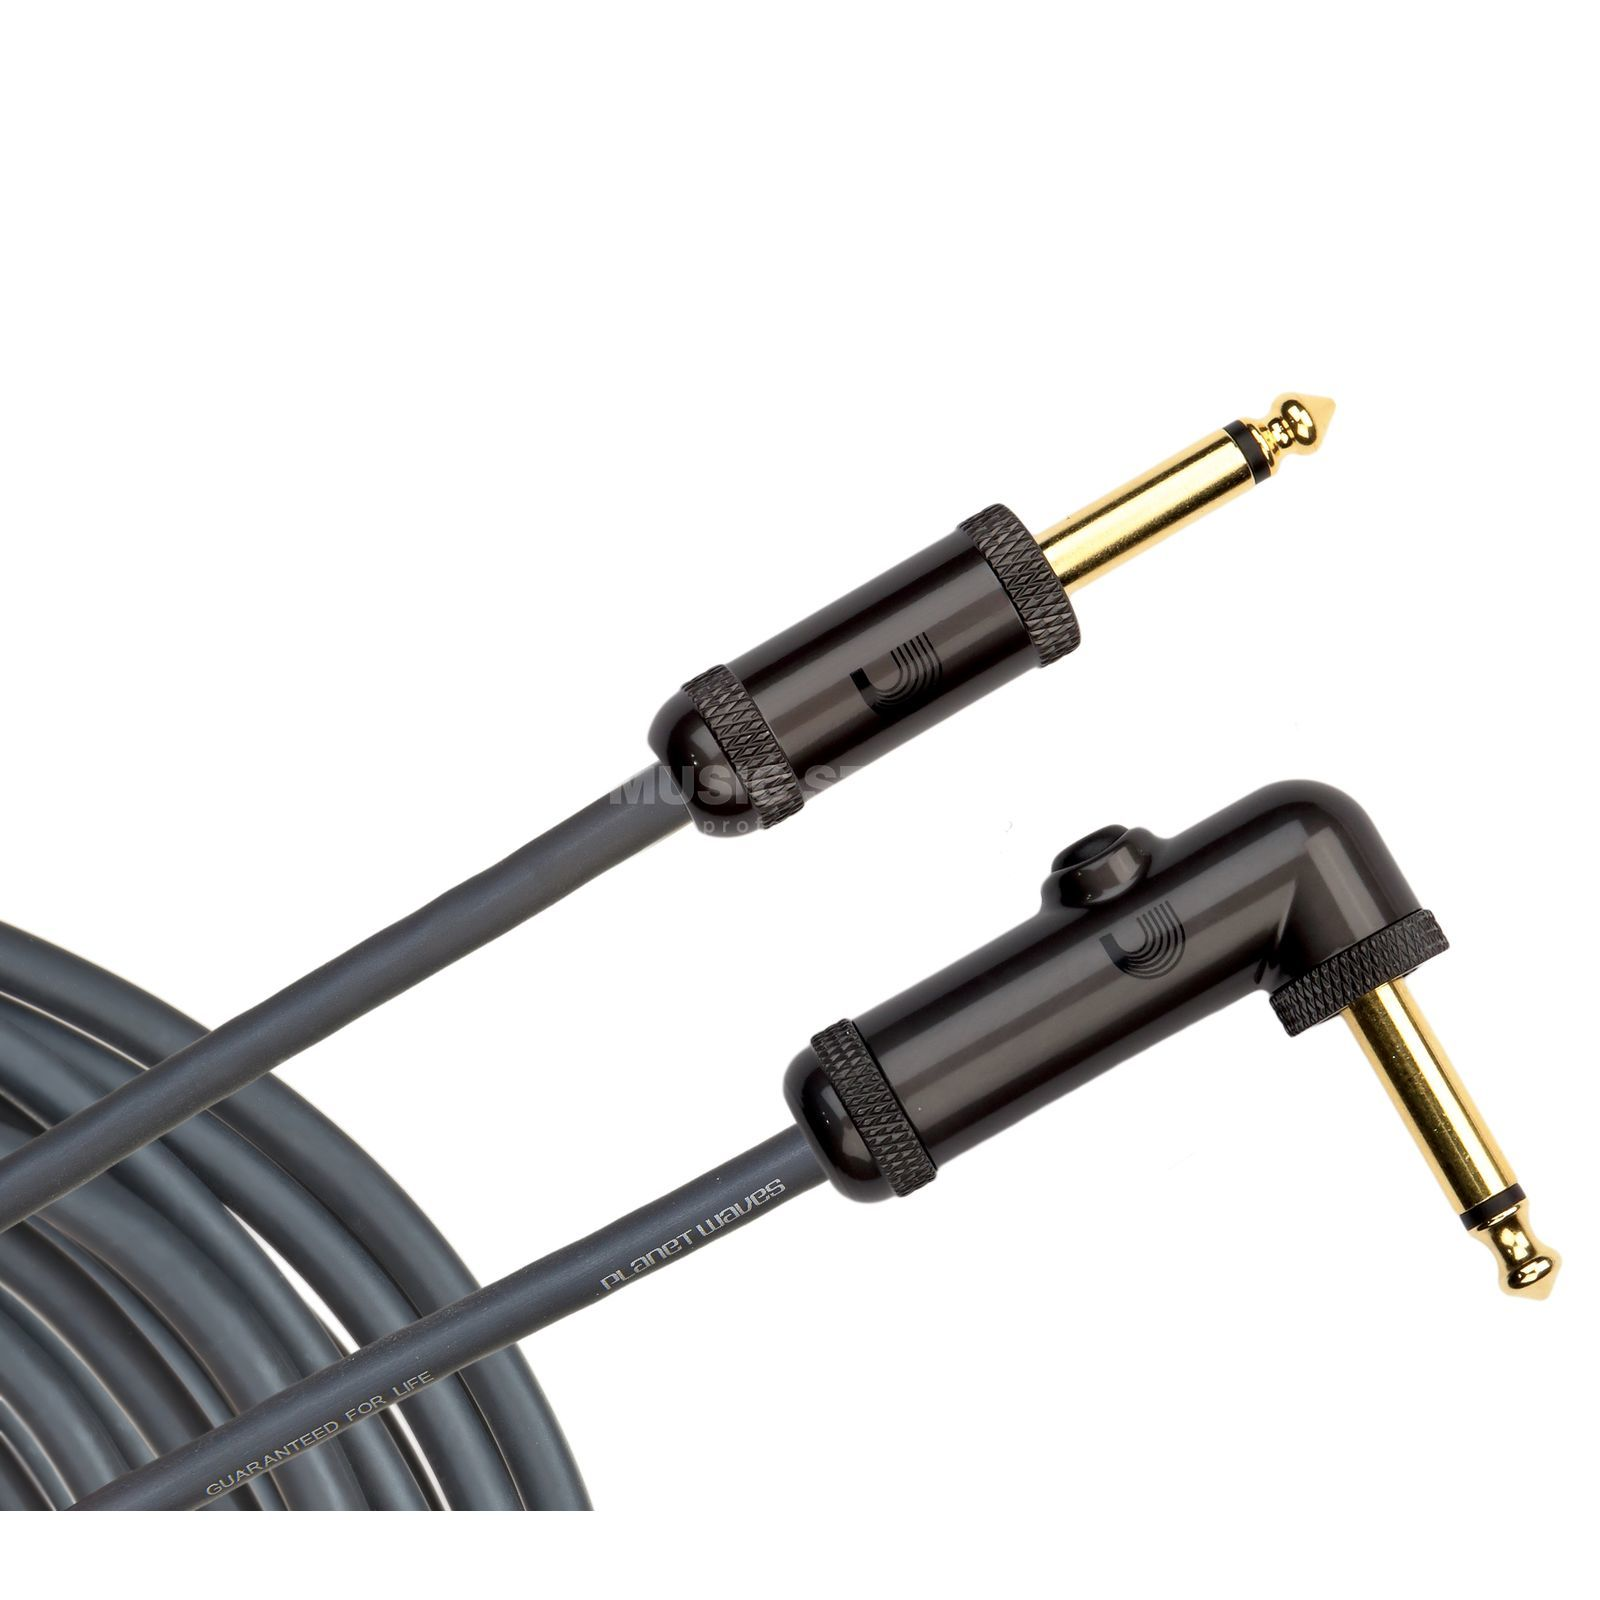 D'Addario Planet Waves Instrument cable 3 meters PW-AGRA-10 angled Produktbillede